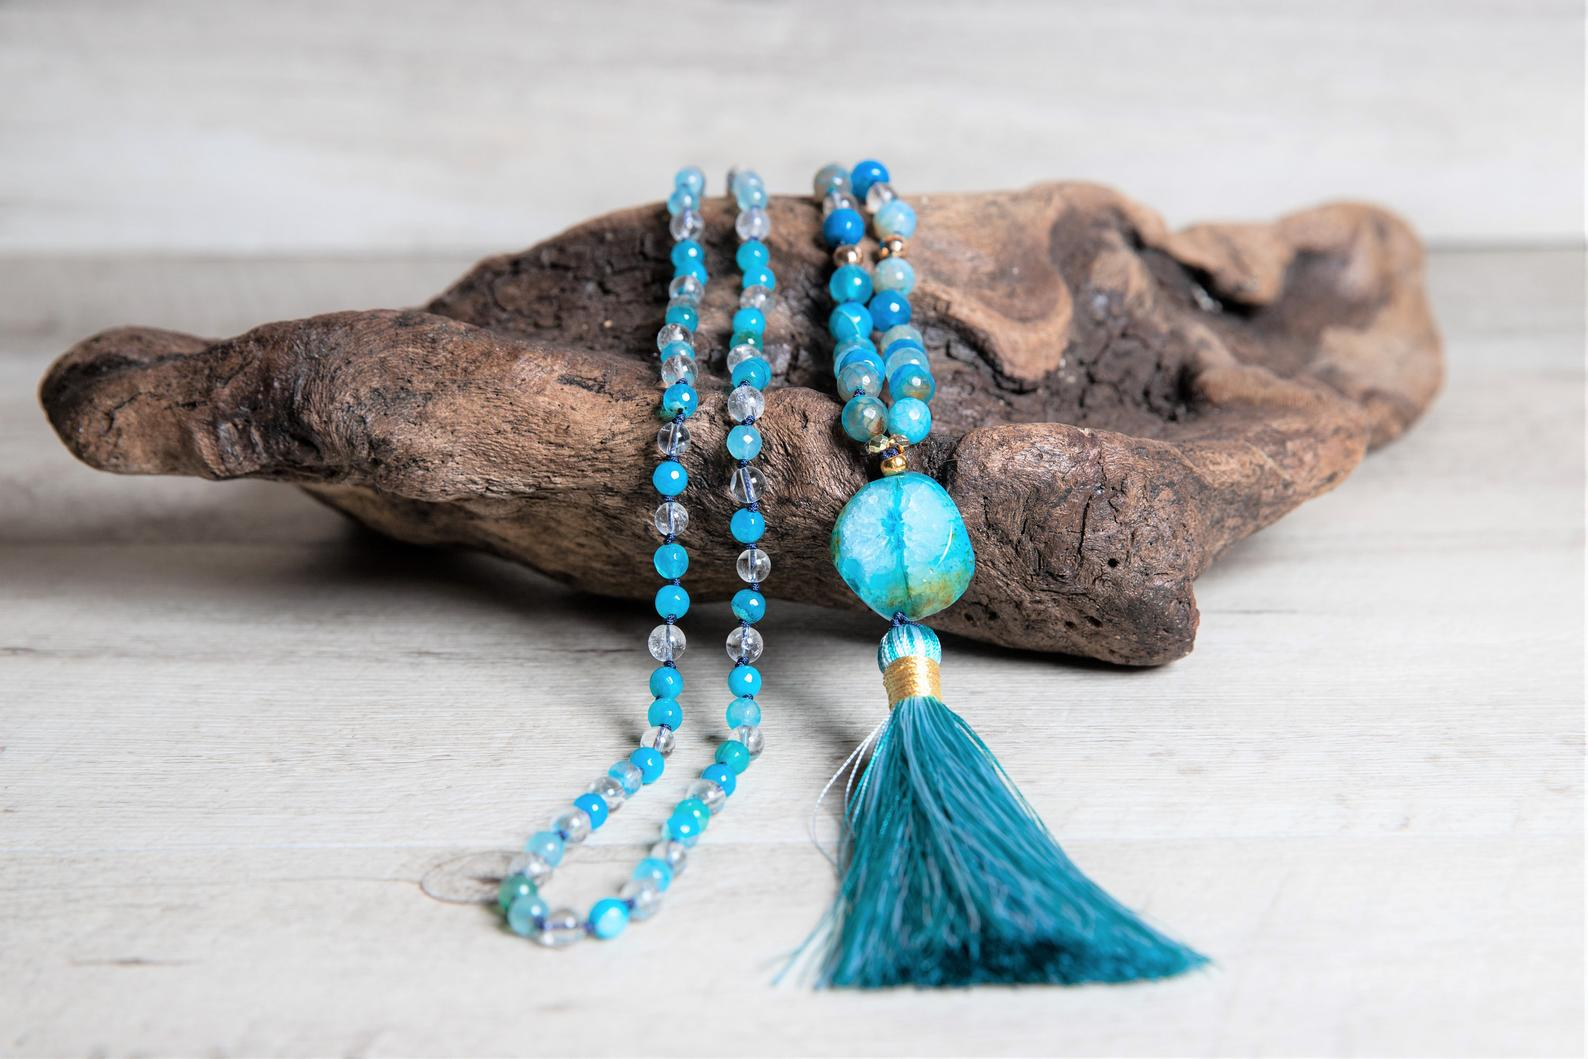 Blue Sky Agate n' Crystal Quartz Mala Necklace, Agate Geode Guru, Handmade Rayon Tassel, Long Boho Necklace,3 Year Anniversary Gift for Wife